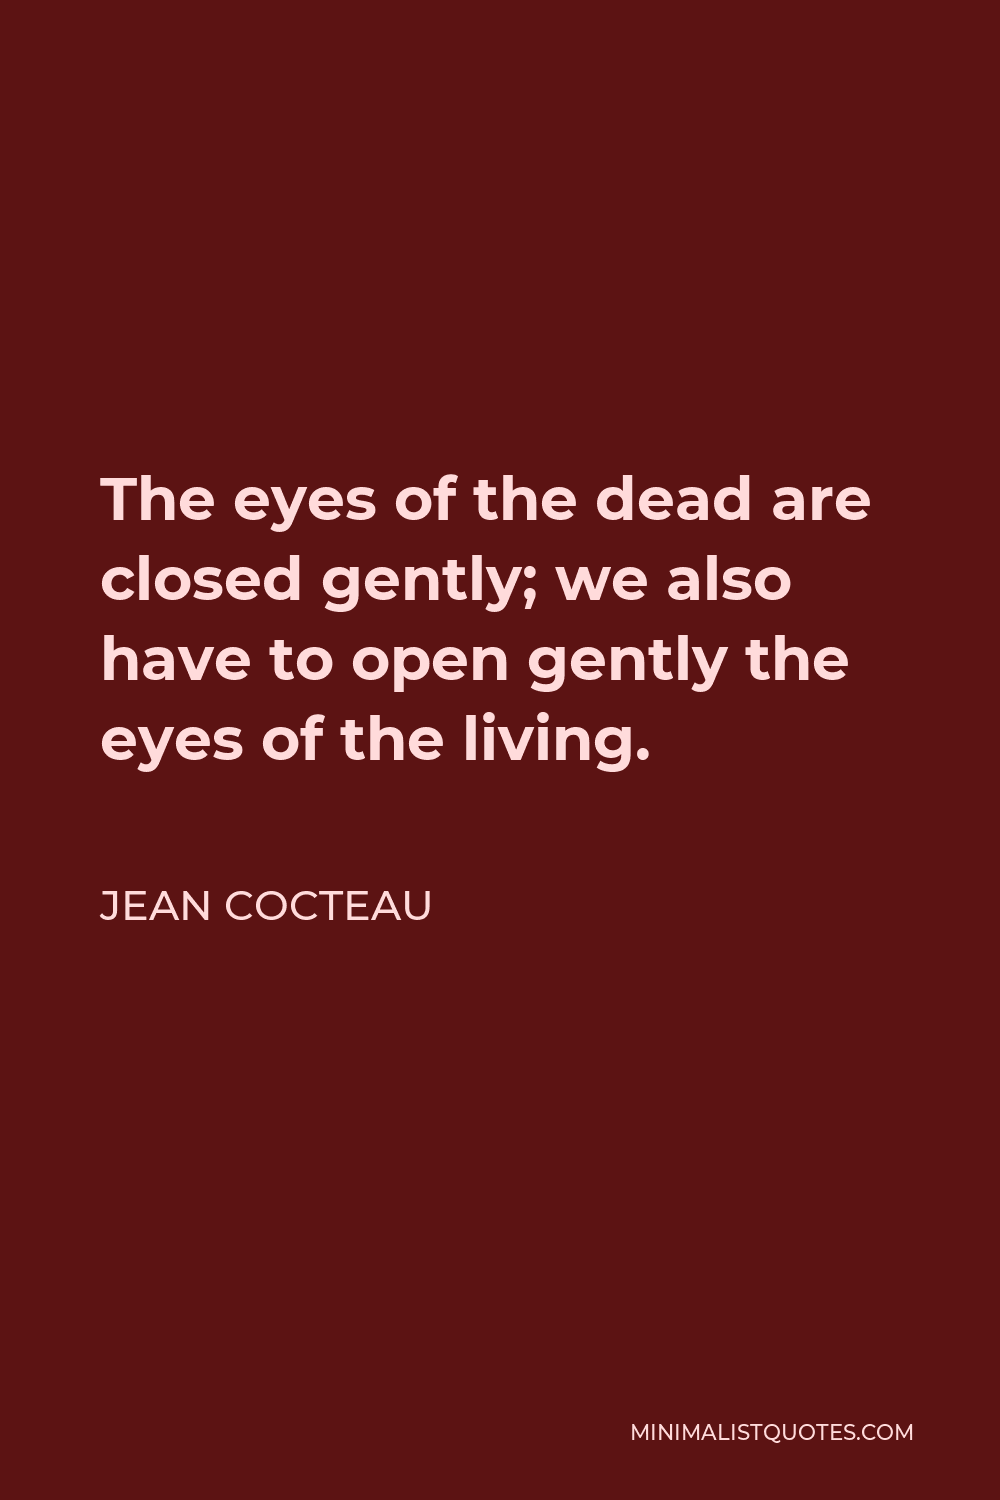 Jean Cocteau Quote - The eyes of the dead are closed gently; we also have to open gently the eyes of the living.